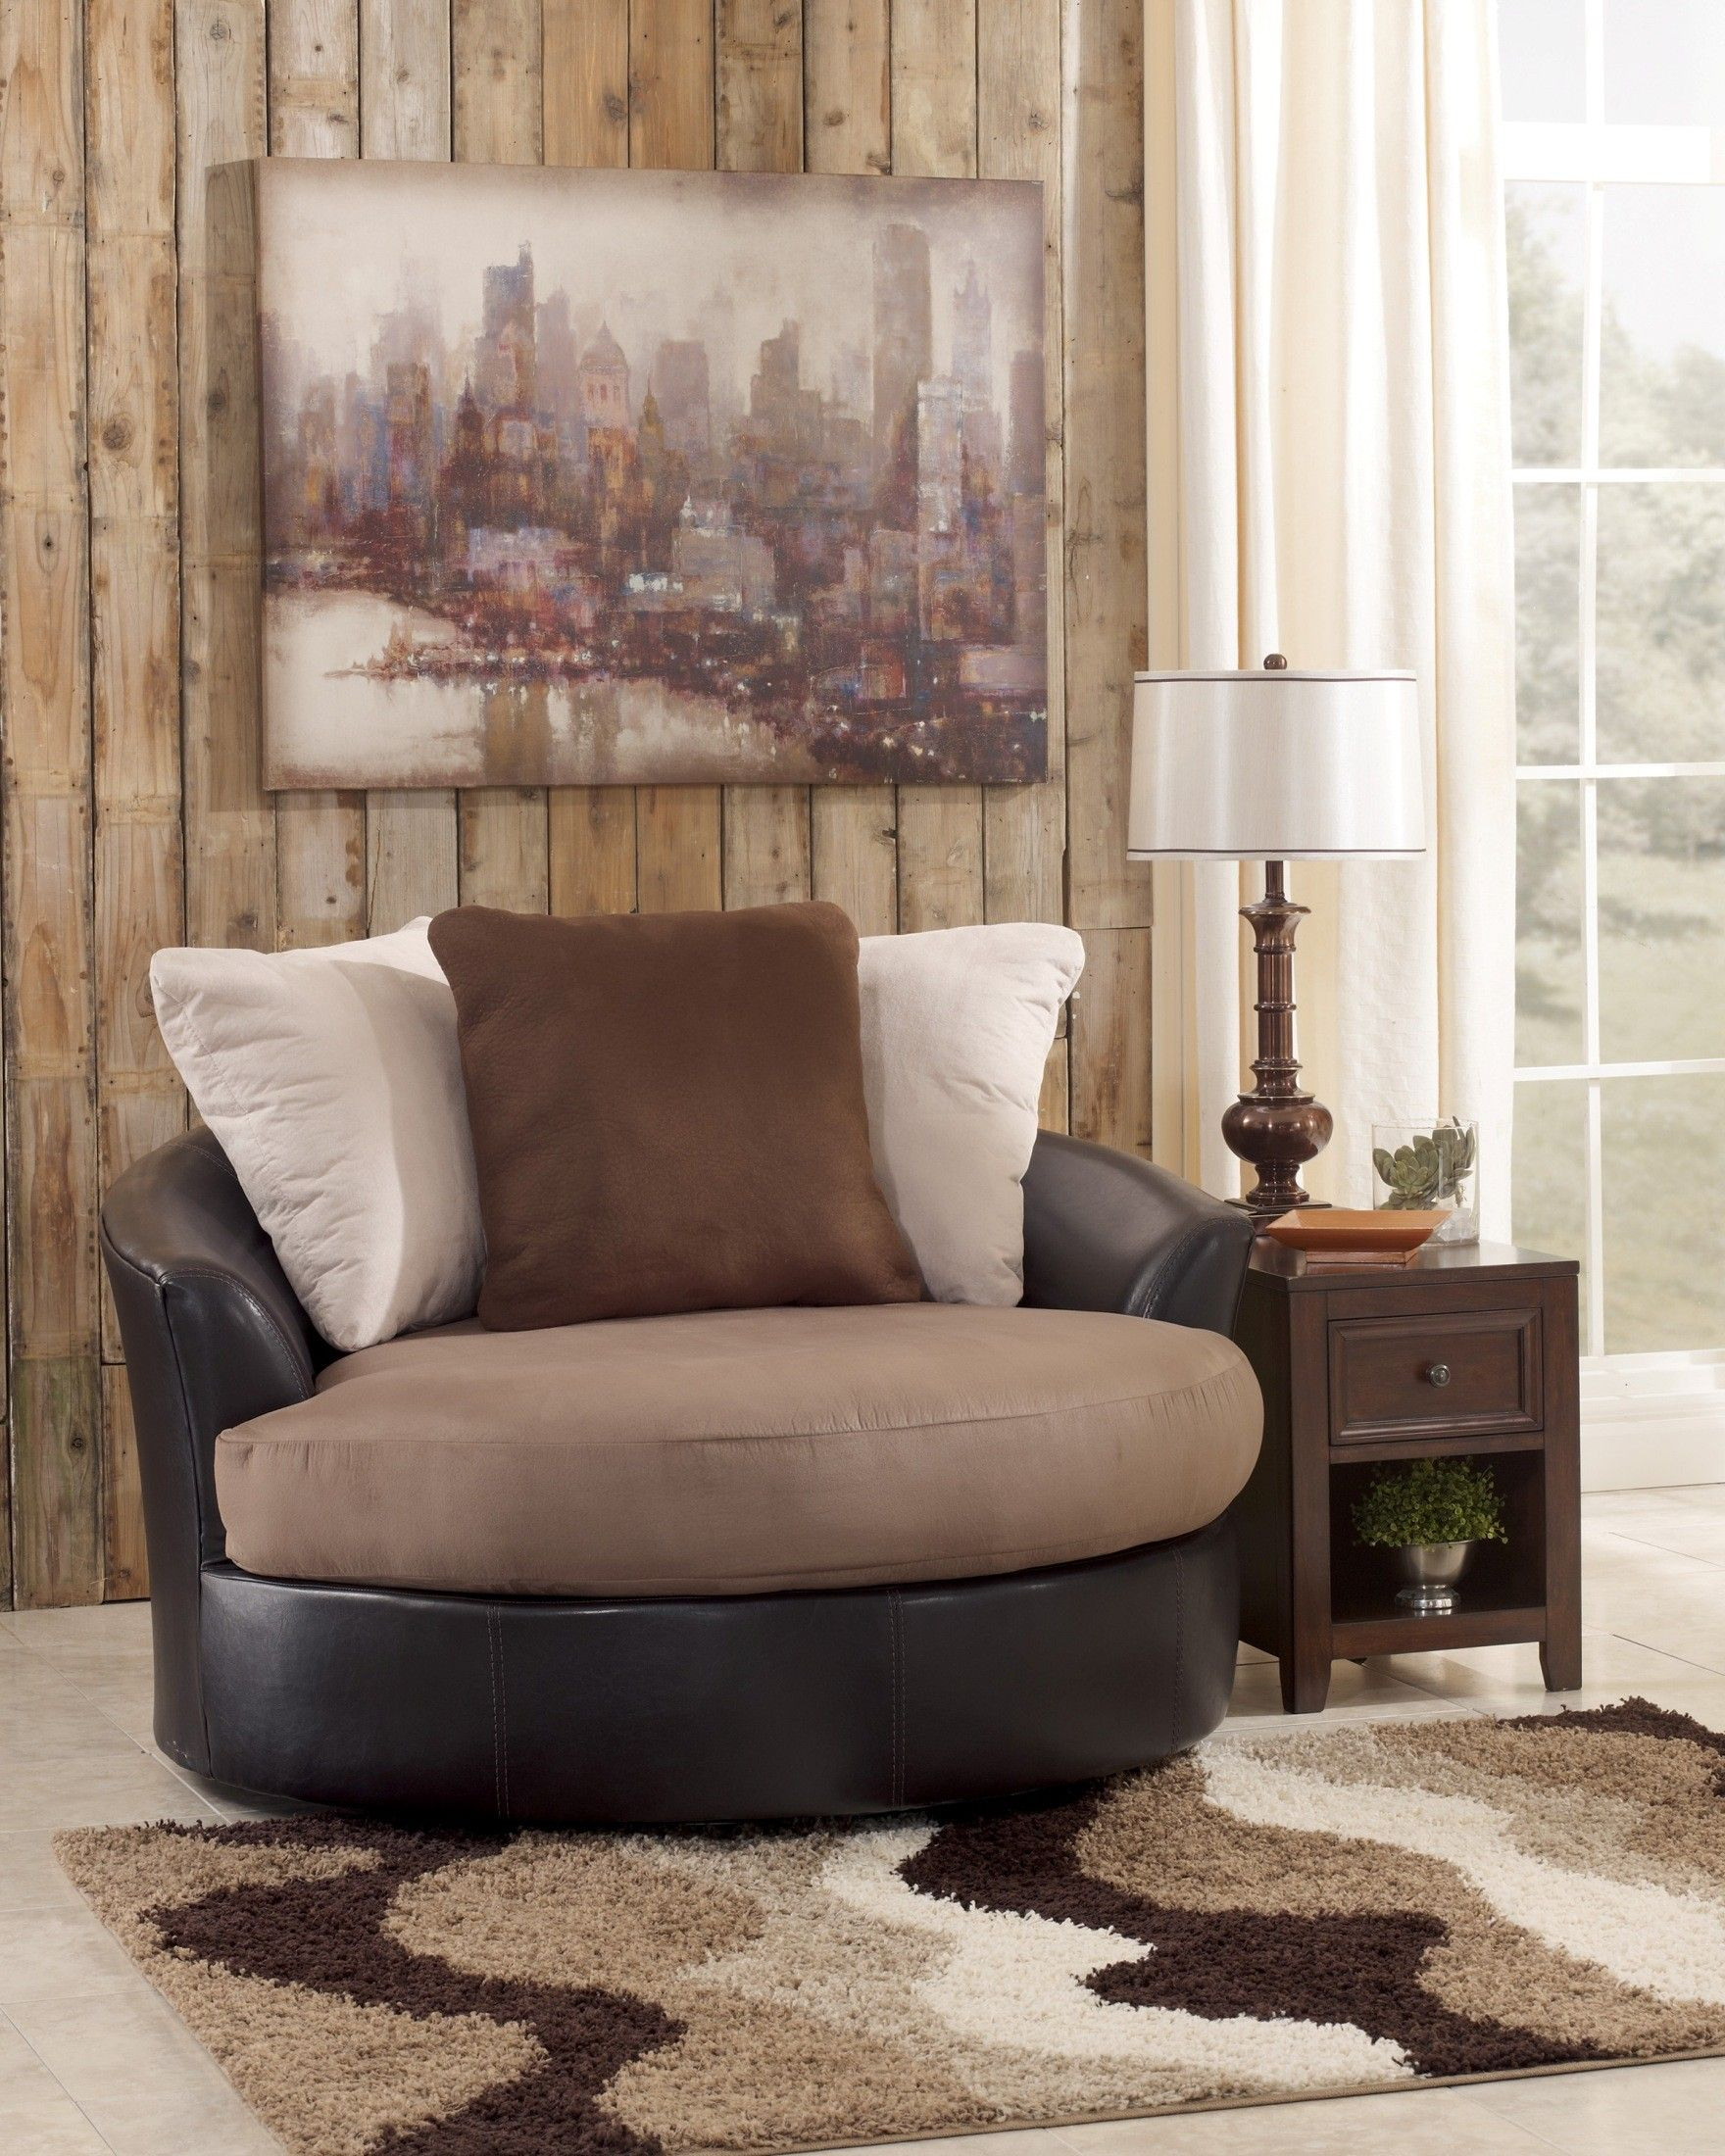 Masoli mocha oversized swivel accent chair furniture - Swivel chair living room furniture ...